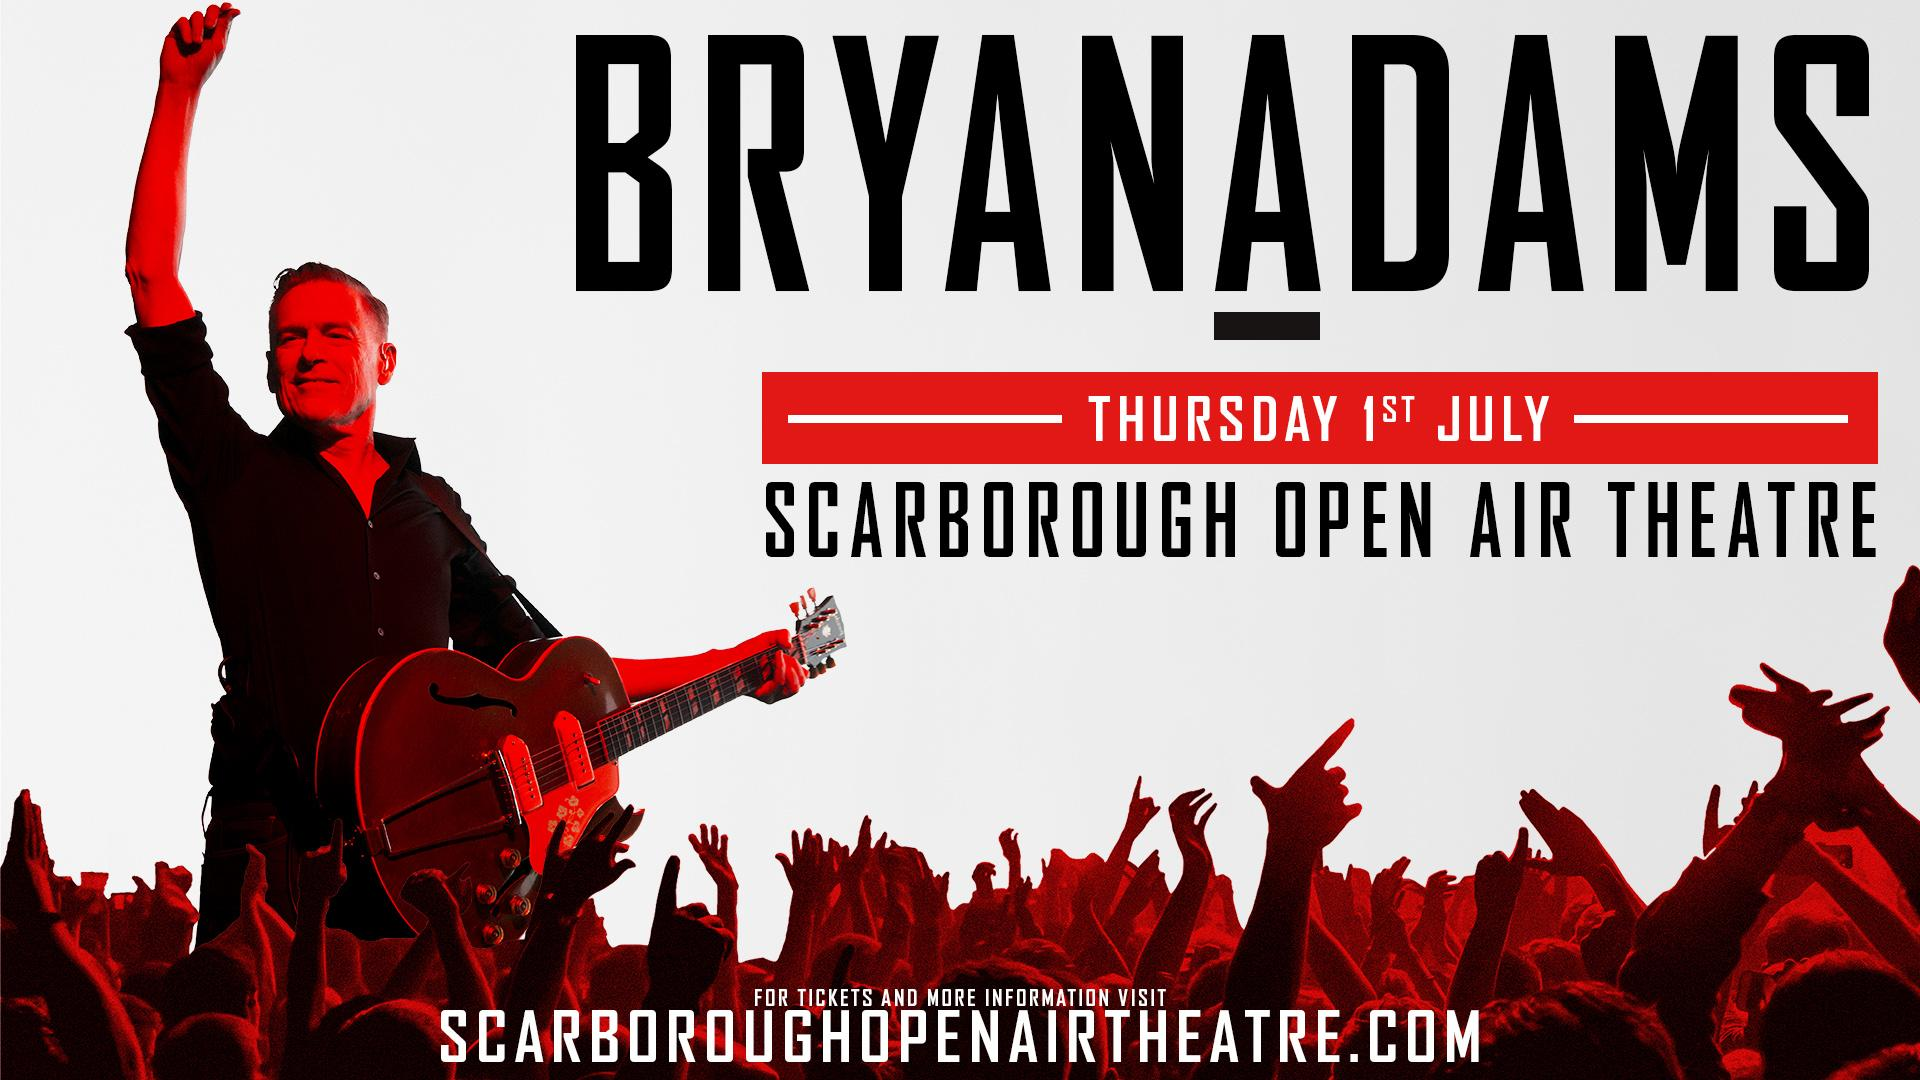 Promotional image for Bryan Adams show at Scarborough Open Air Theatre